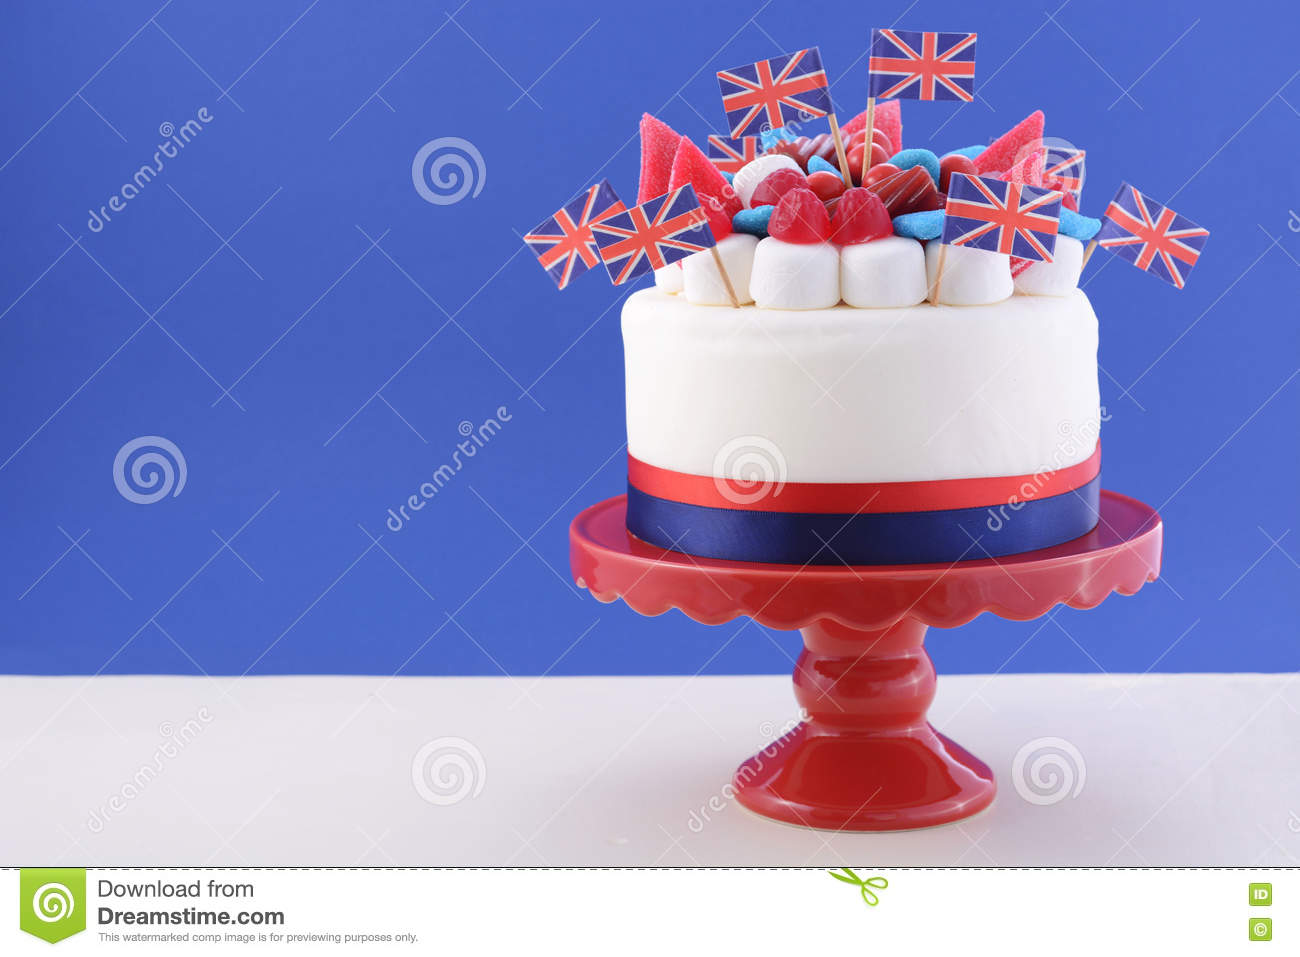 UK Celebration Cake With Flags Marshmallow And Candy Decorations On A Red Stand White Table Against Blue Background